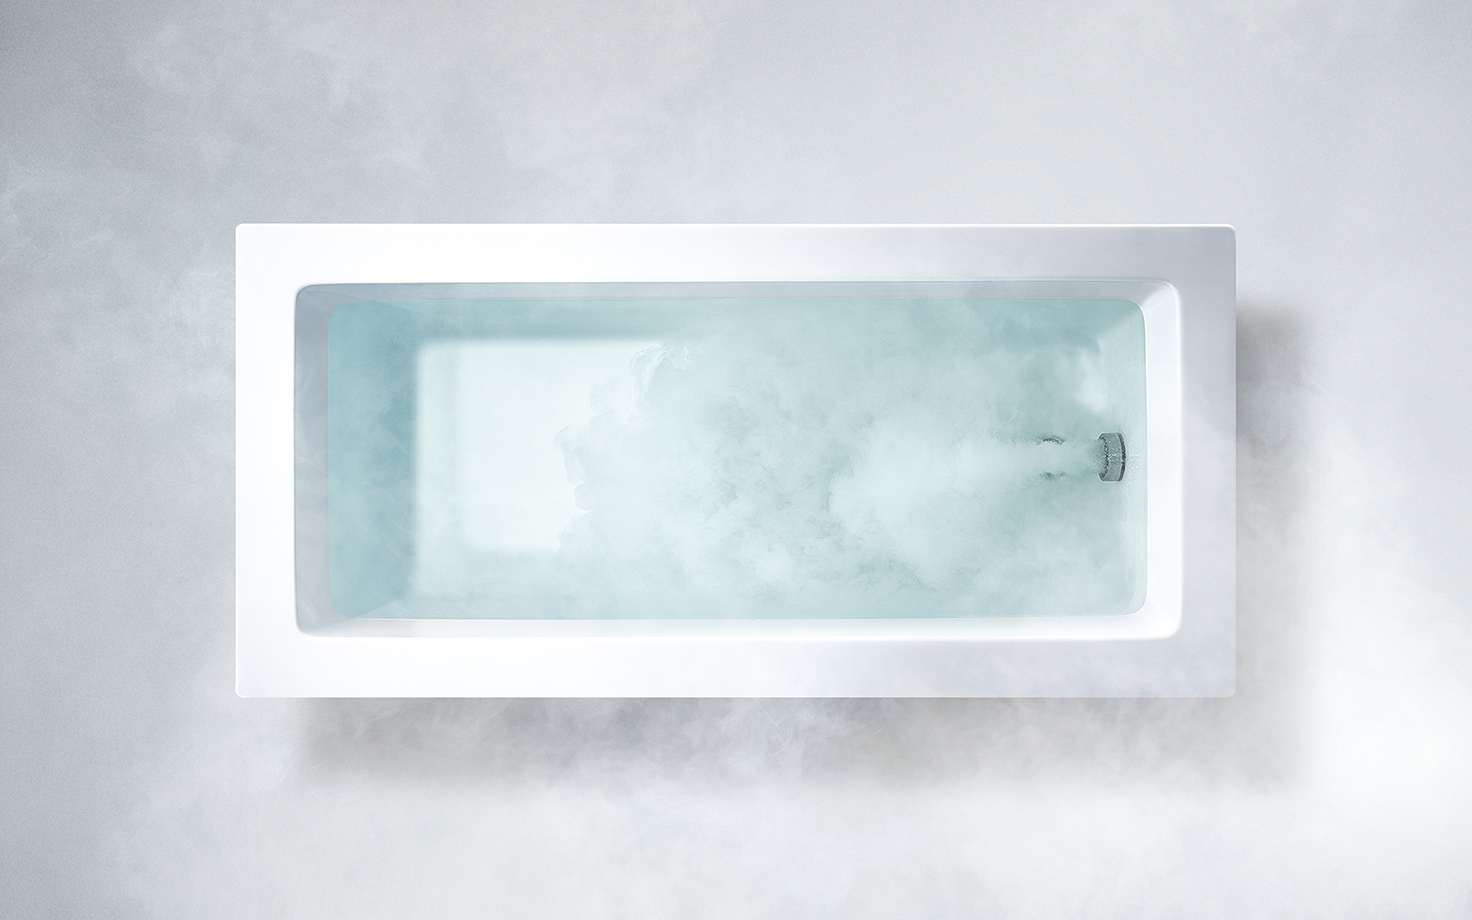 MICRO BUBBLE BATH UNIT